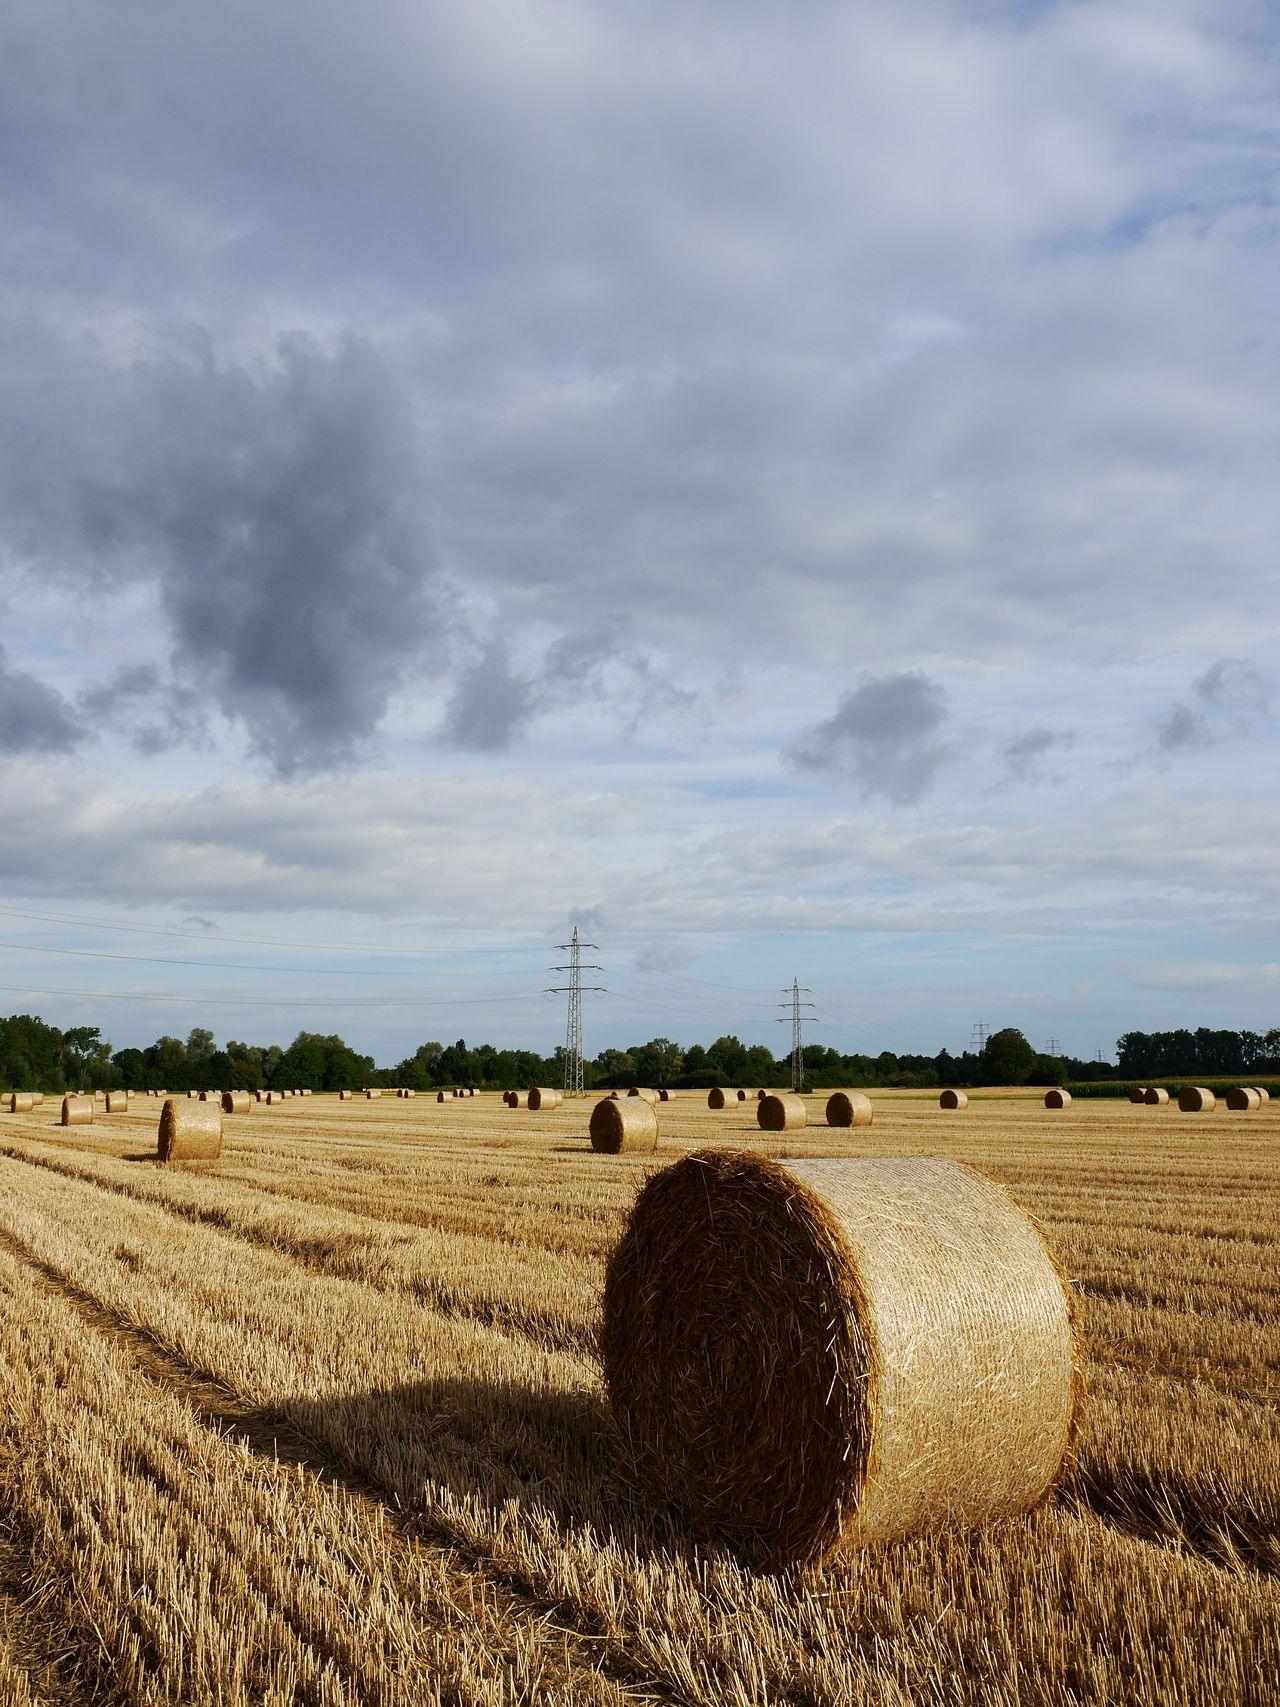 Hay balls // Field Agriculture Rural Scene Crop  Landscape Bale  Cloud - Sky Cereal Plant Sky Outdoors Day Nature No People Beauty In Nature Scenics Storm Cloud Tree